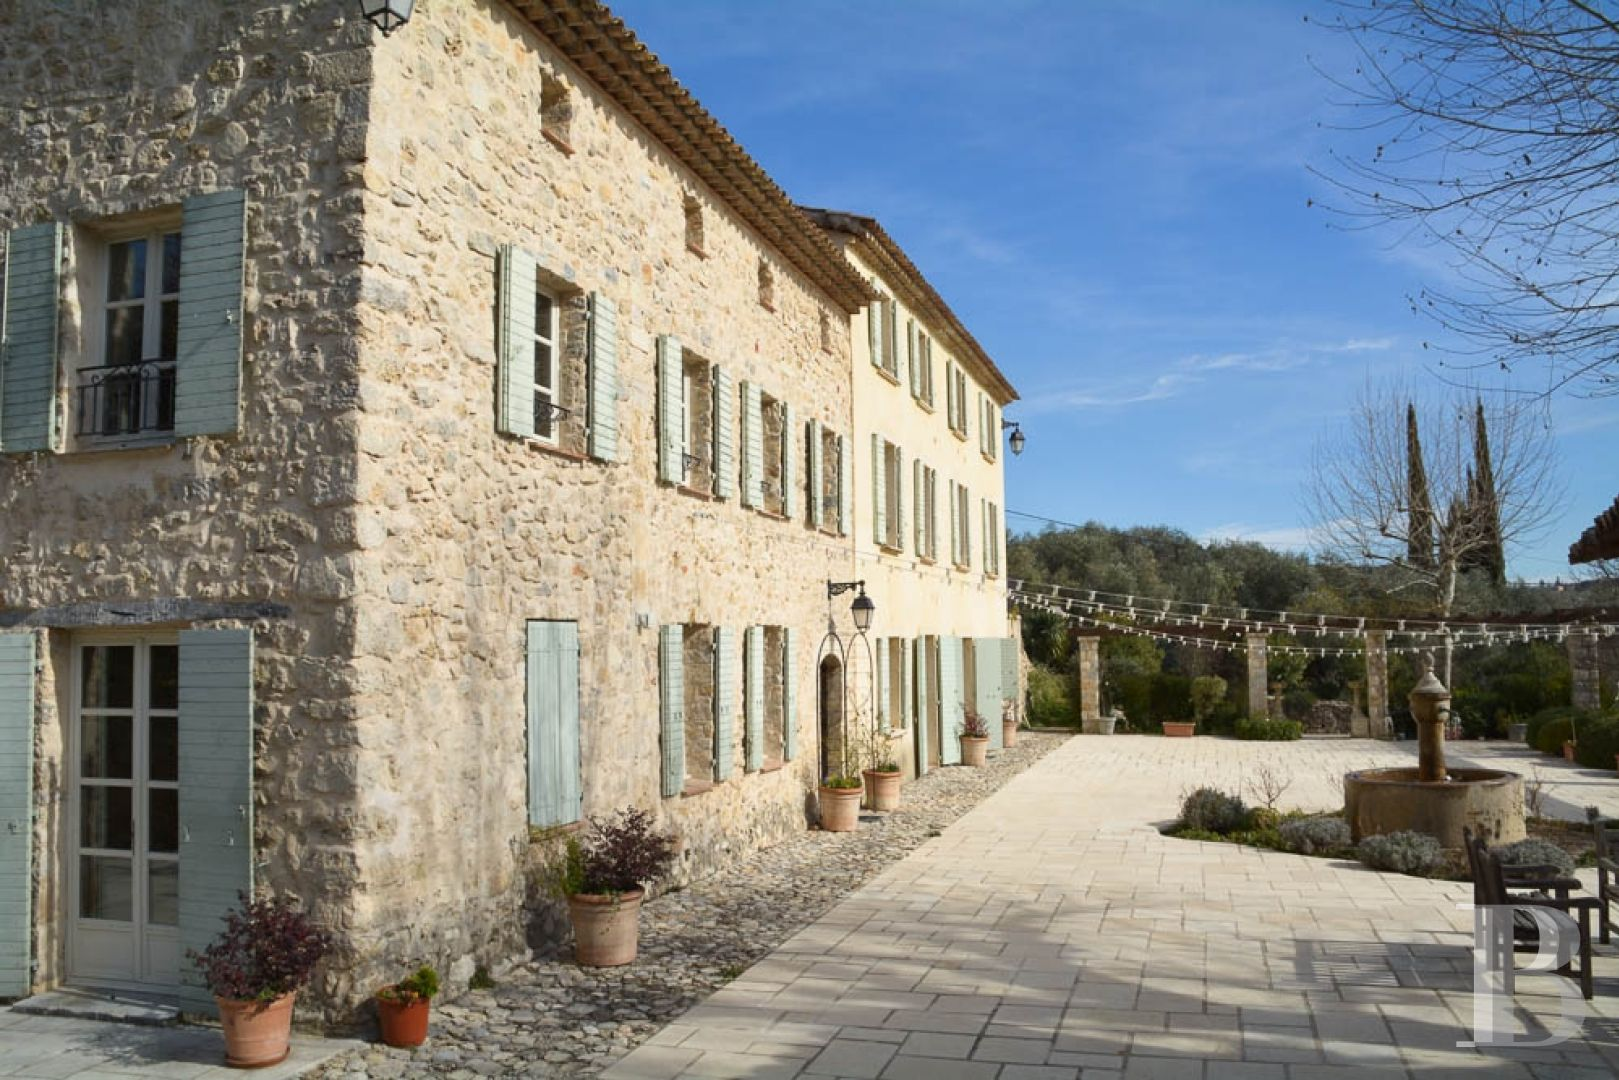 property for sale France provence cote dazur residences traditional - 4 zoom